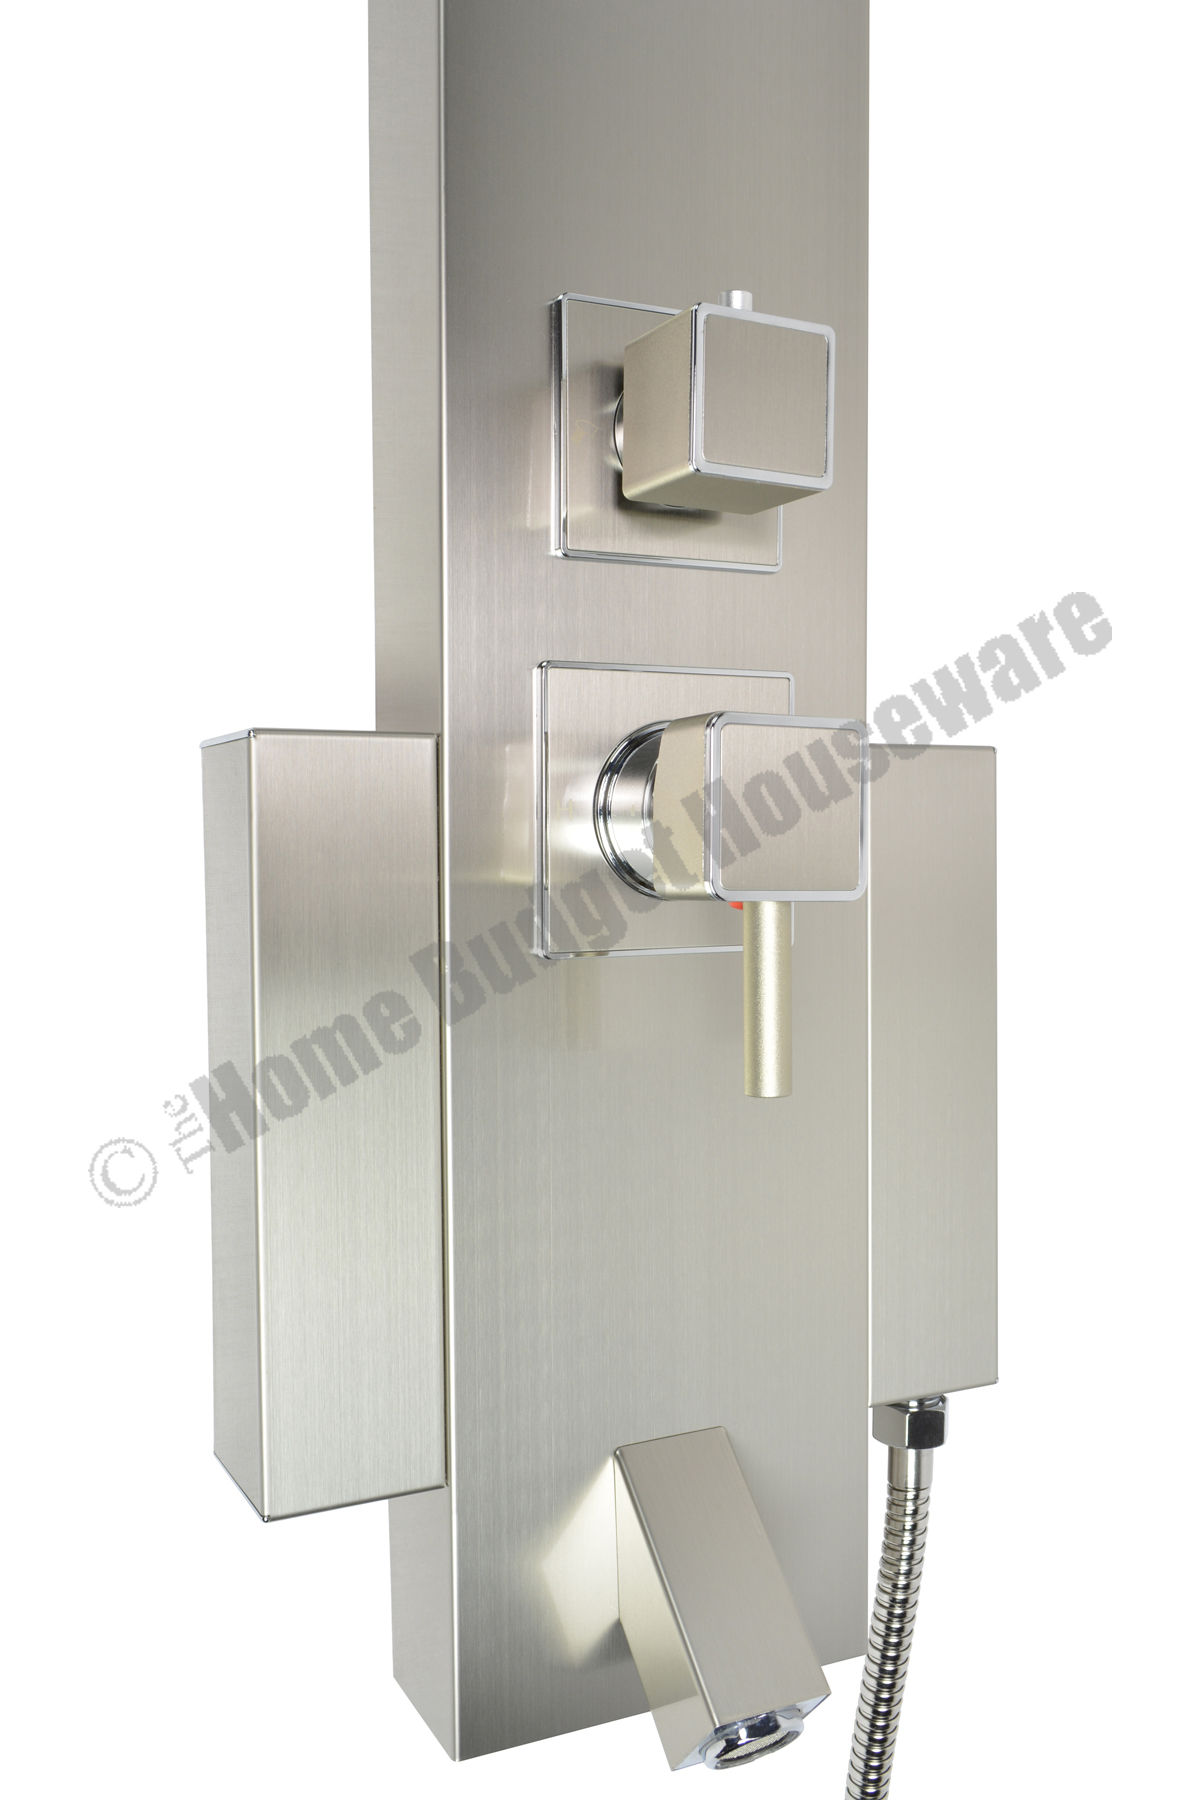 48 Shower Panel With Rainfall Showerhead Tub Spout Sps822